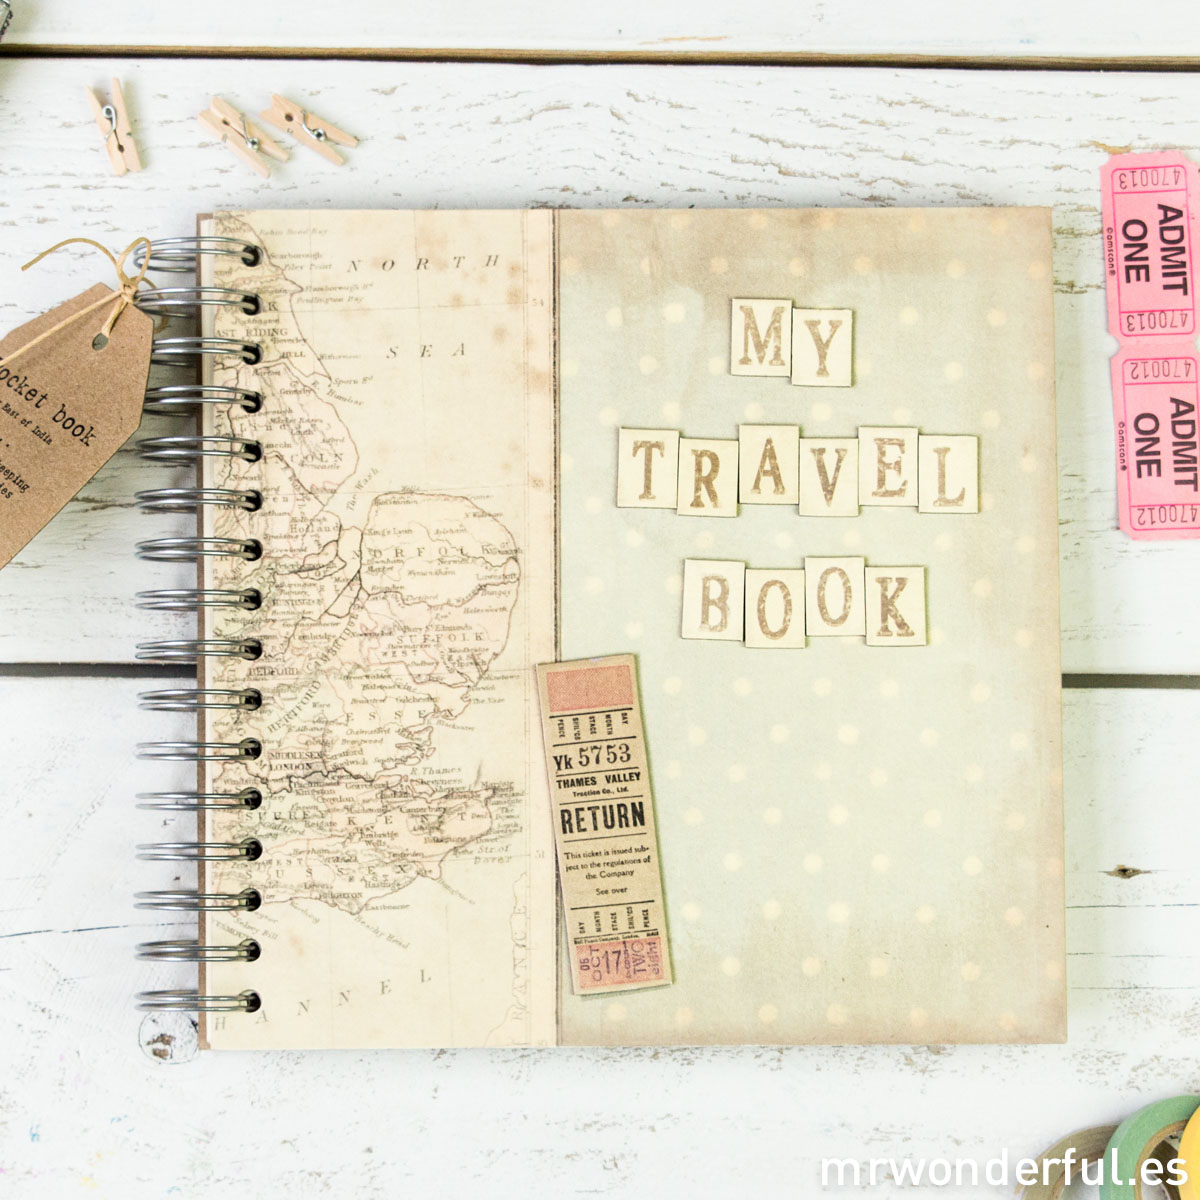 mrwonderful_1756_Album-scrapbook_travel-book-10